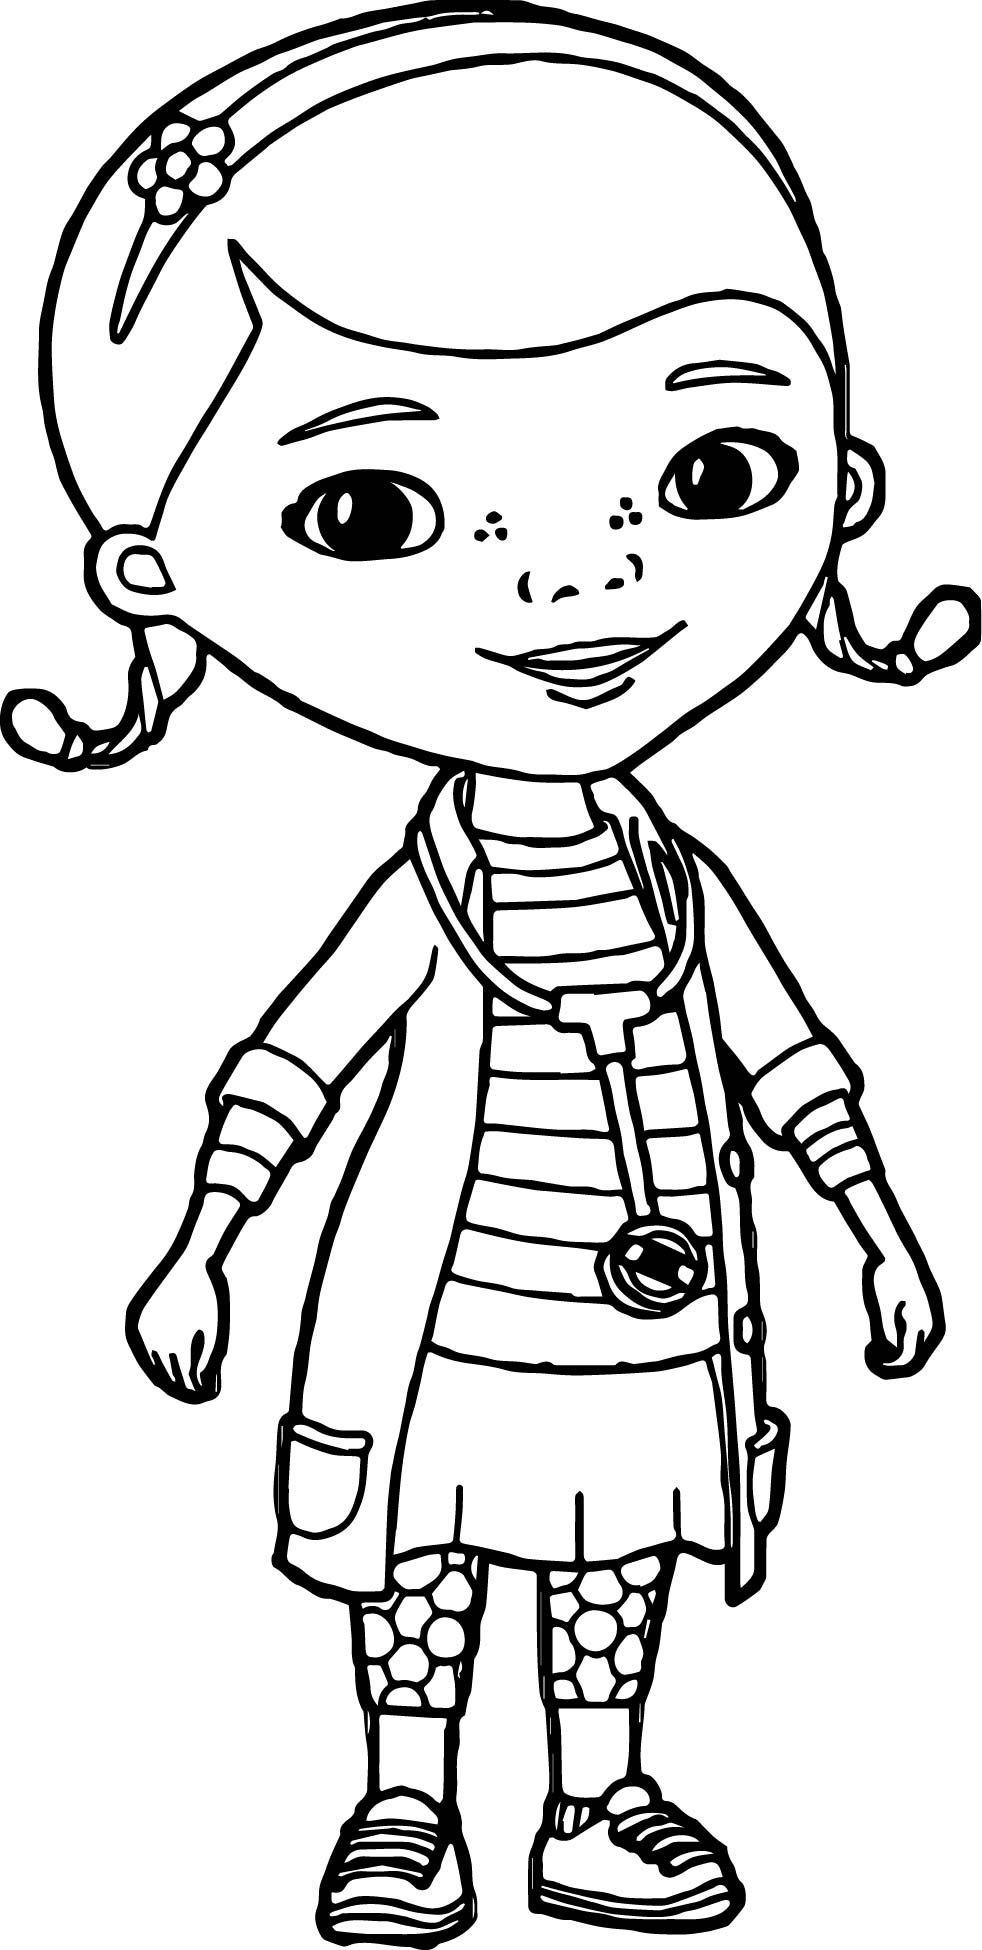 Doc Mcstuffins Printables Coloring Pages At Getdrawings Com Free